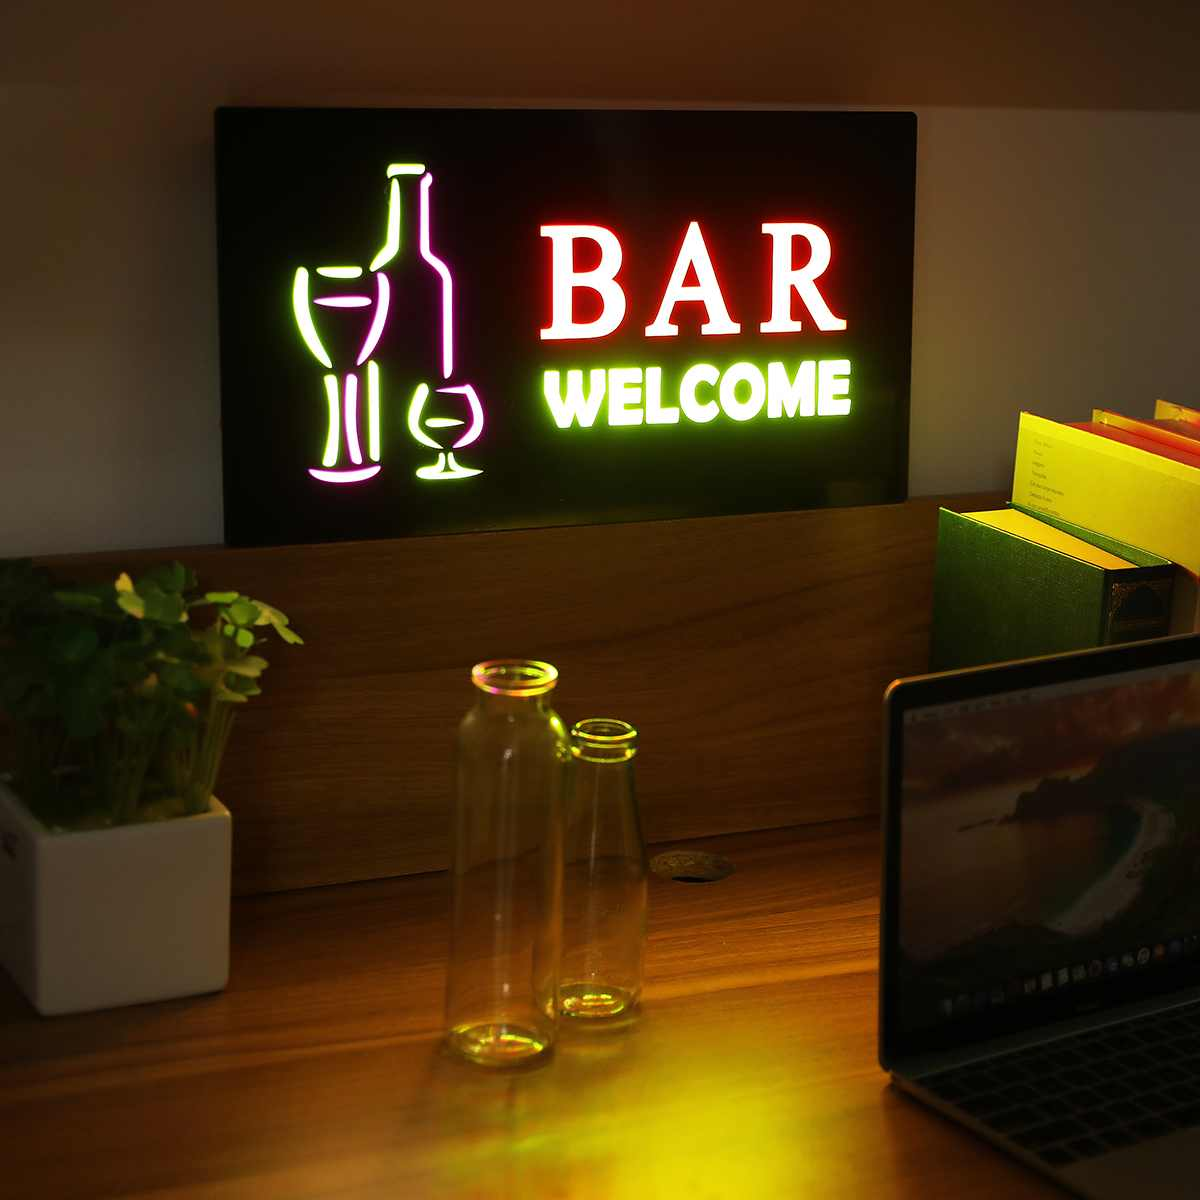 LED Hanging Sign Light Board Bar Pub Club Store Door Window Display Lamp Party Decoration Advertising Commercial Lighting